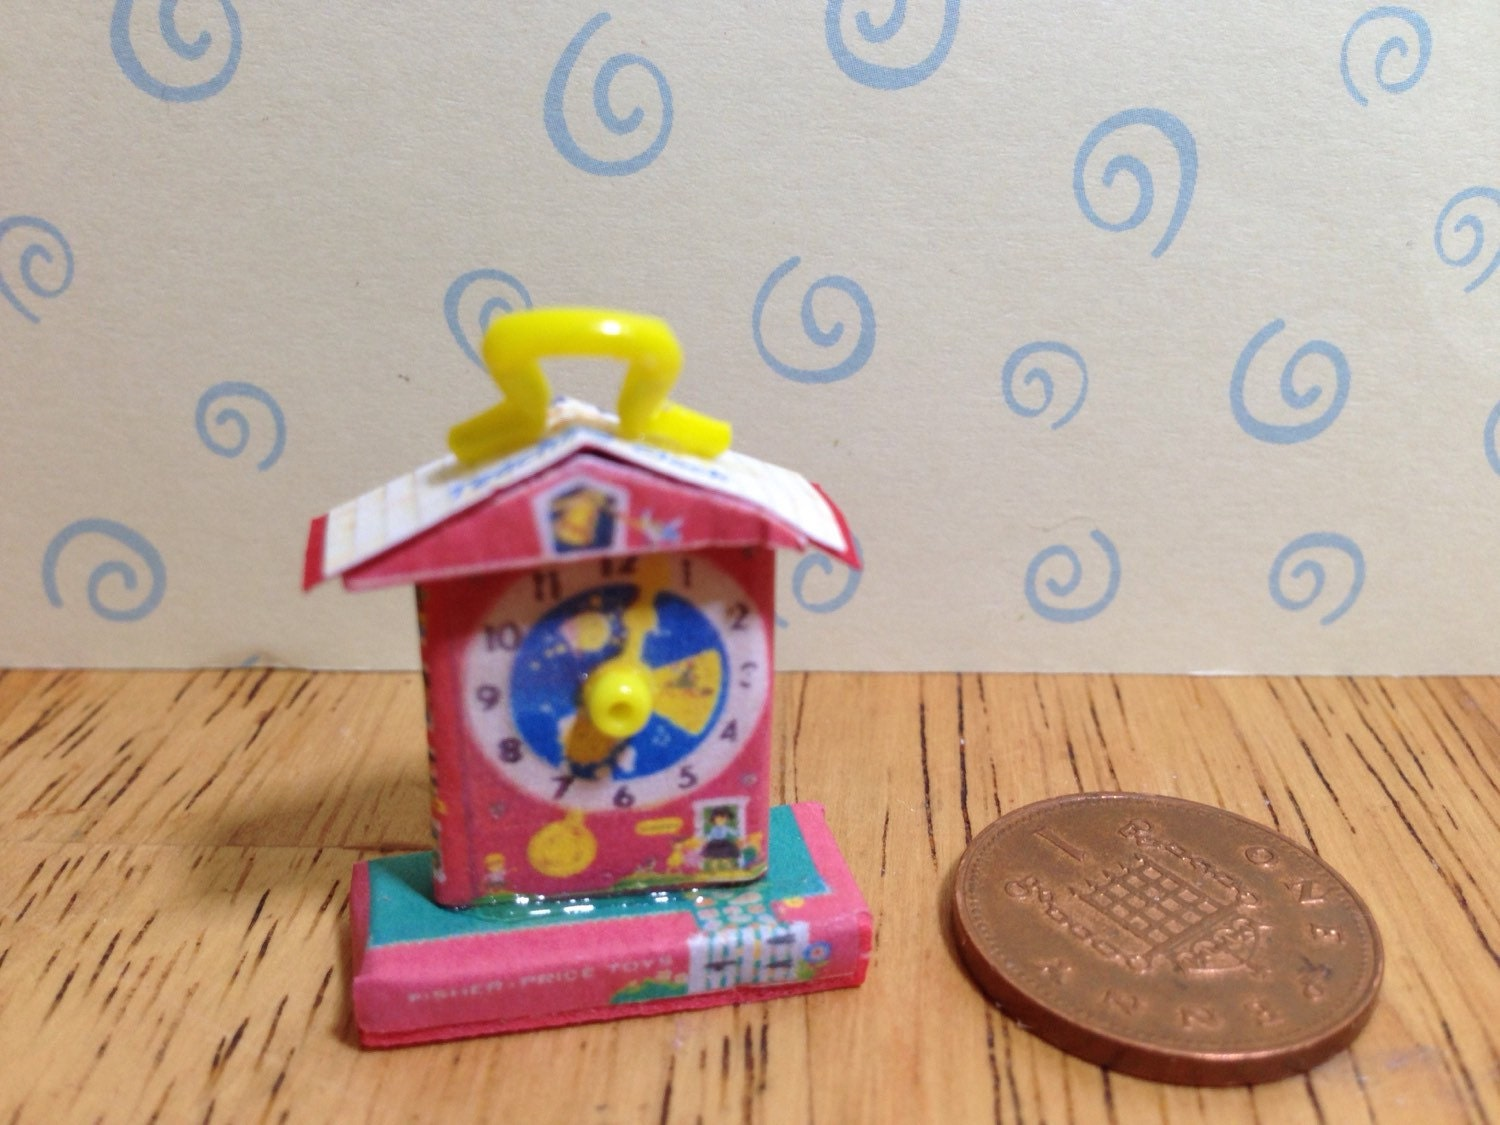 Hand made Dolls house Miniature replica vintage fisher price teaching clock 112 scale